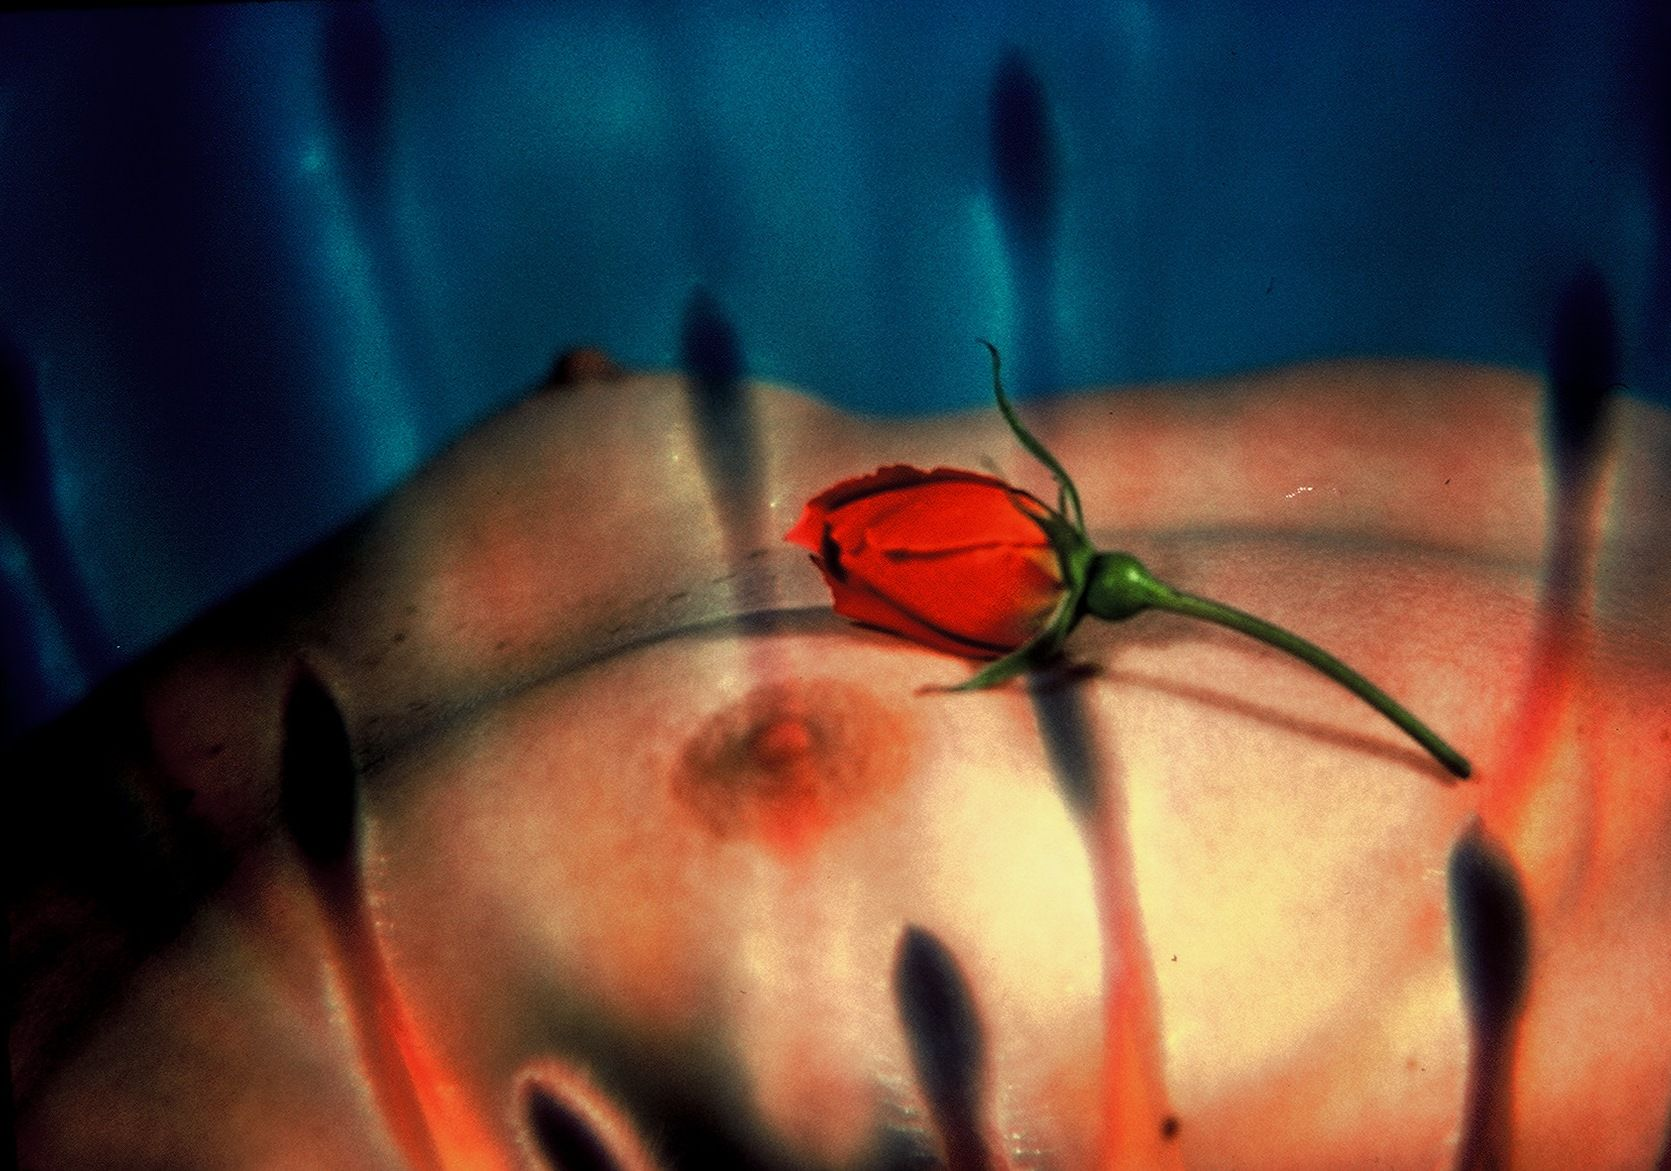 Rosebud Photo by Chuck Dean